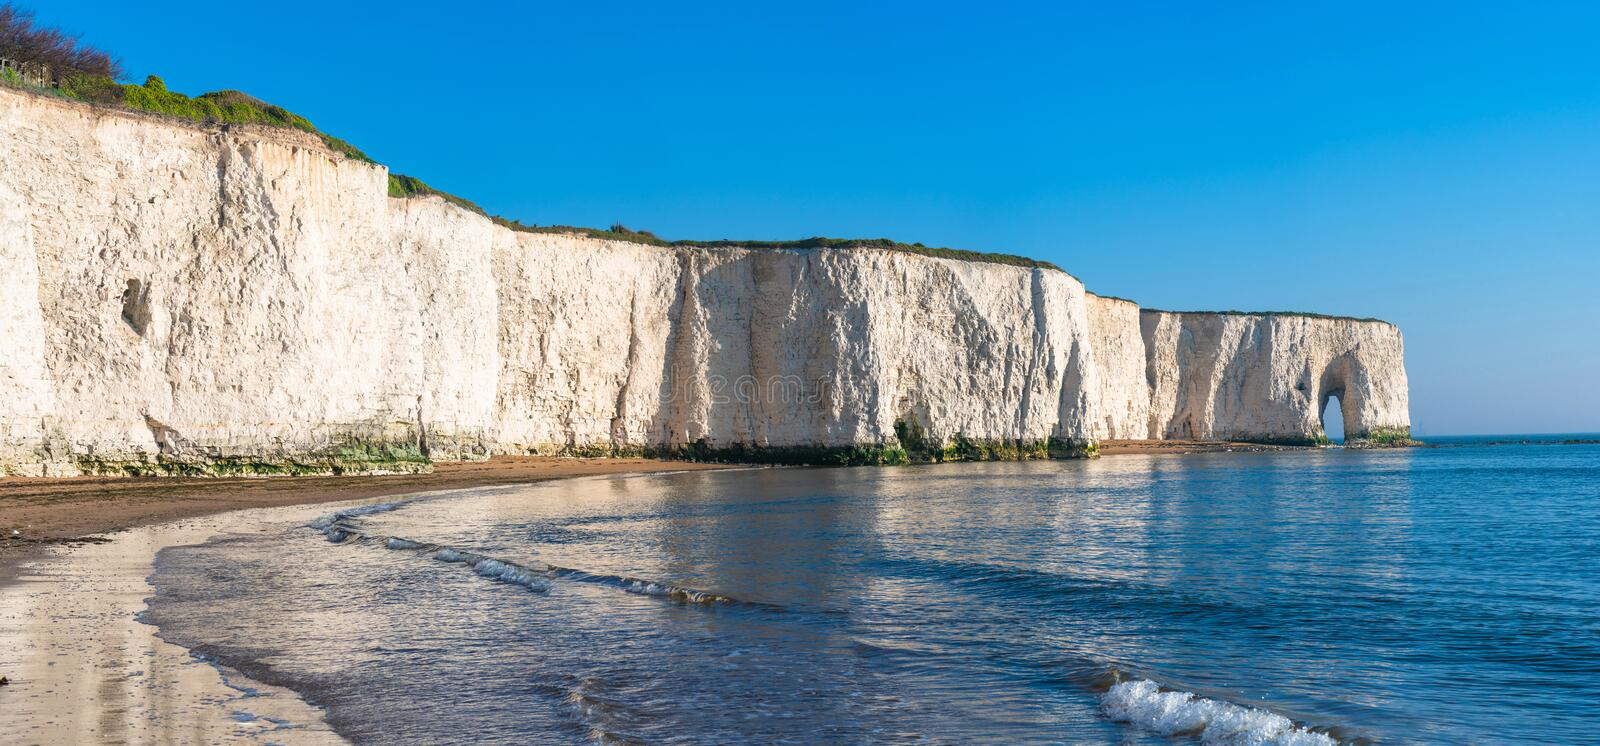 Kingsgate Bay, Margate, East Kent, UK royalty free stock photos